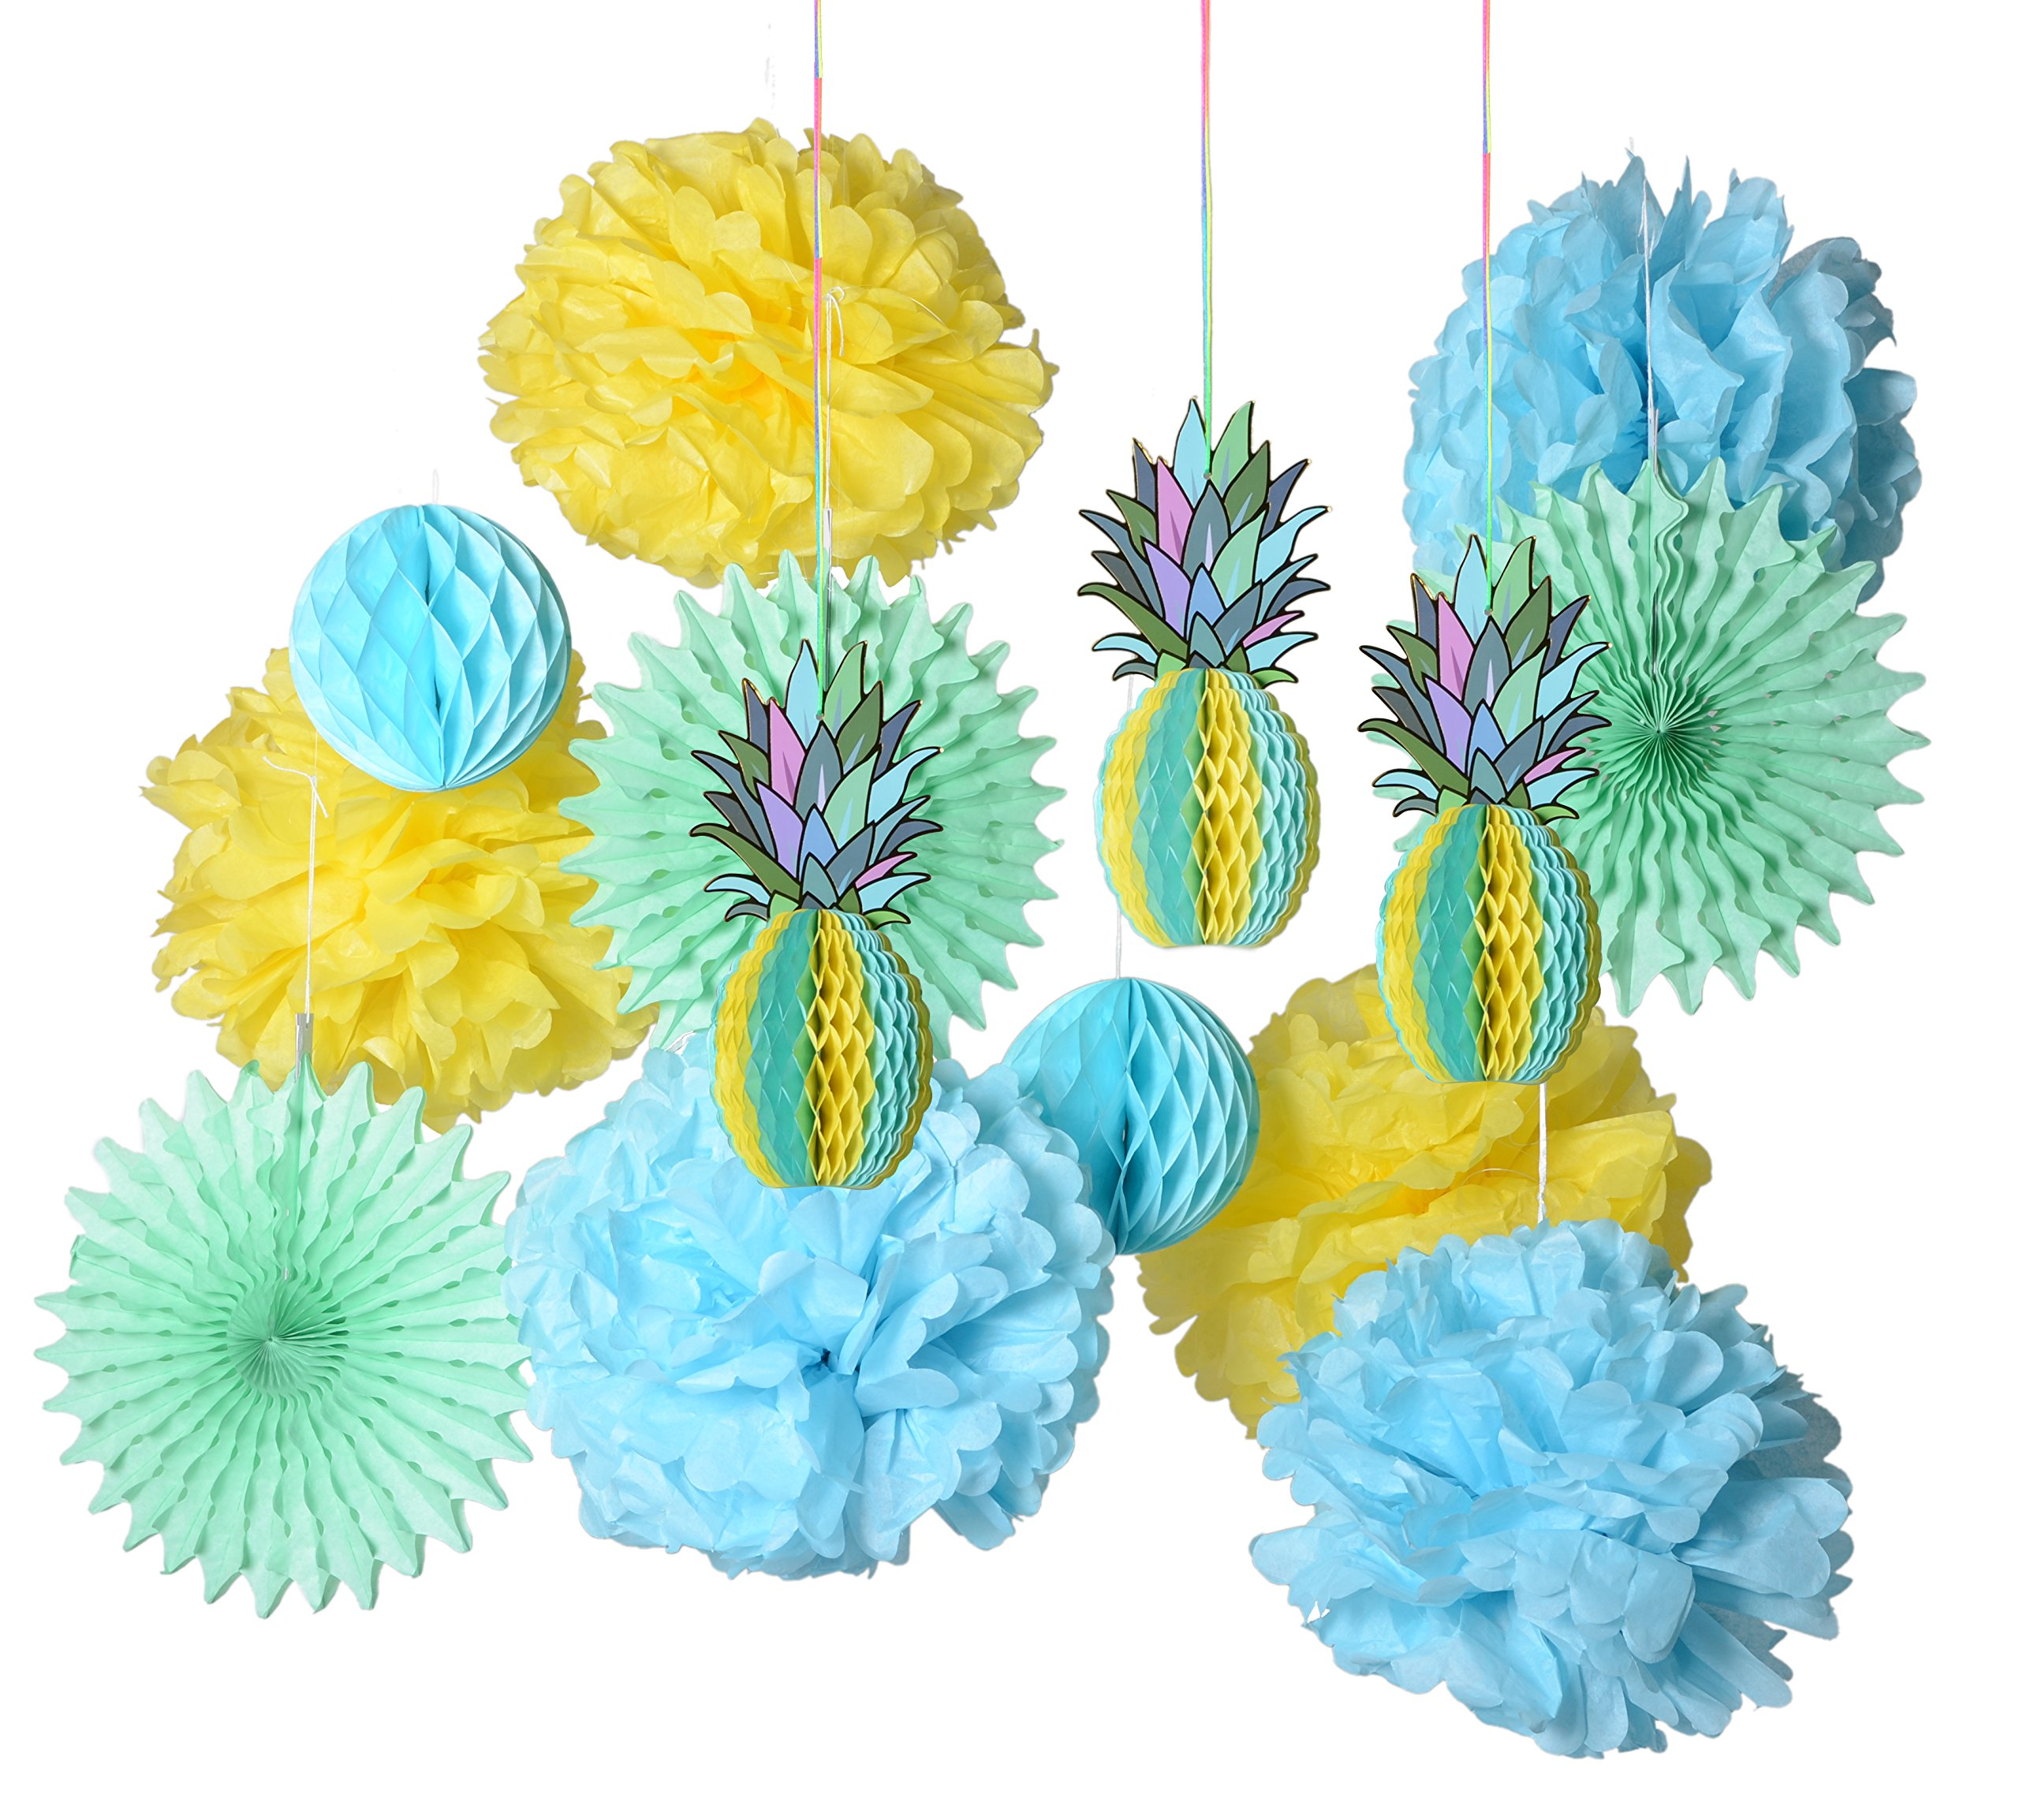 PAPER JAZZ multicolored paper honeycomb pineapple table centerpiece pompom fan kit hanging decoration decor for summer Hawaiian laua tiki beach tropical fruit party birthday (MINT GREEN SET) by paper jazz